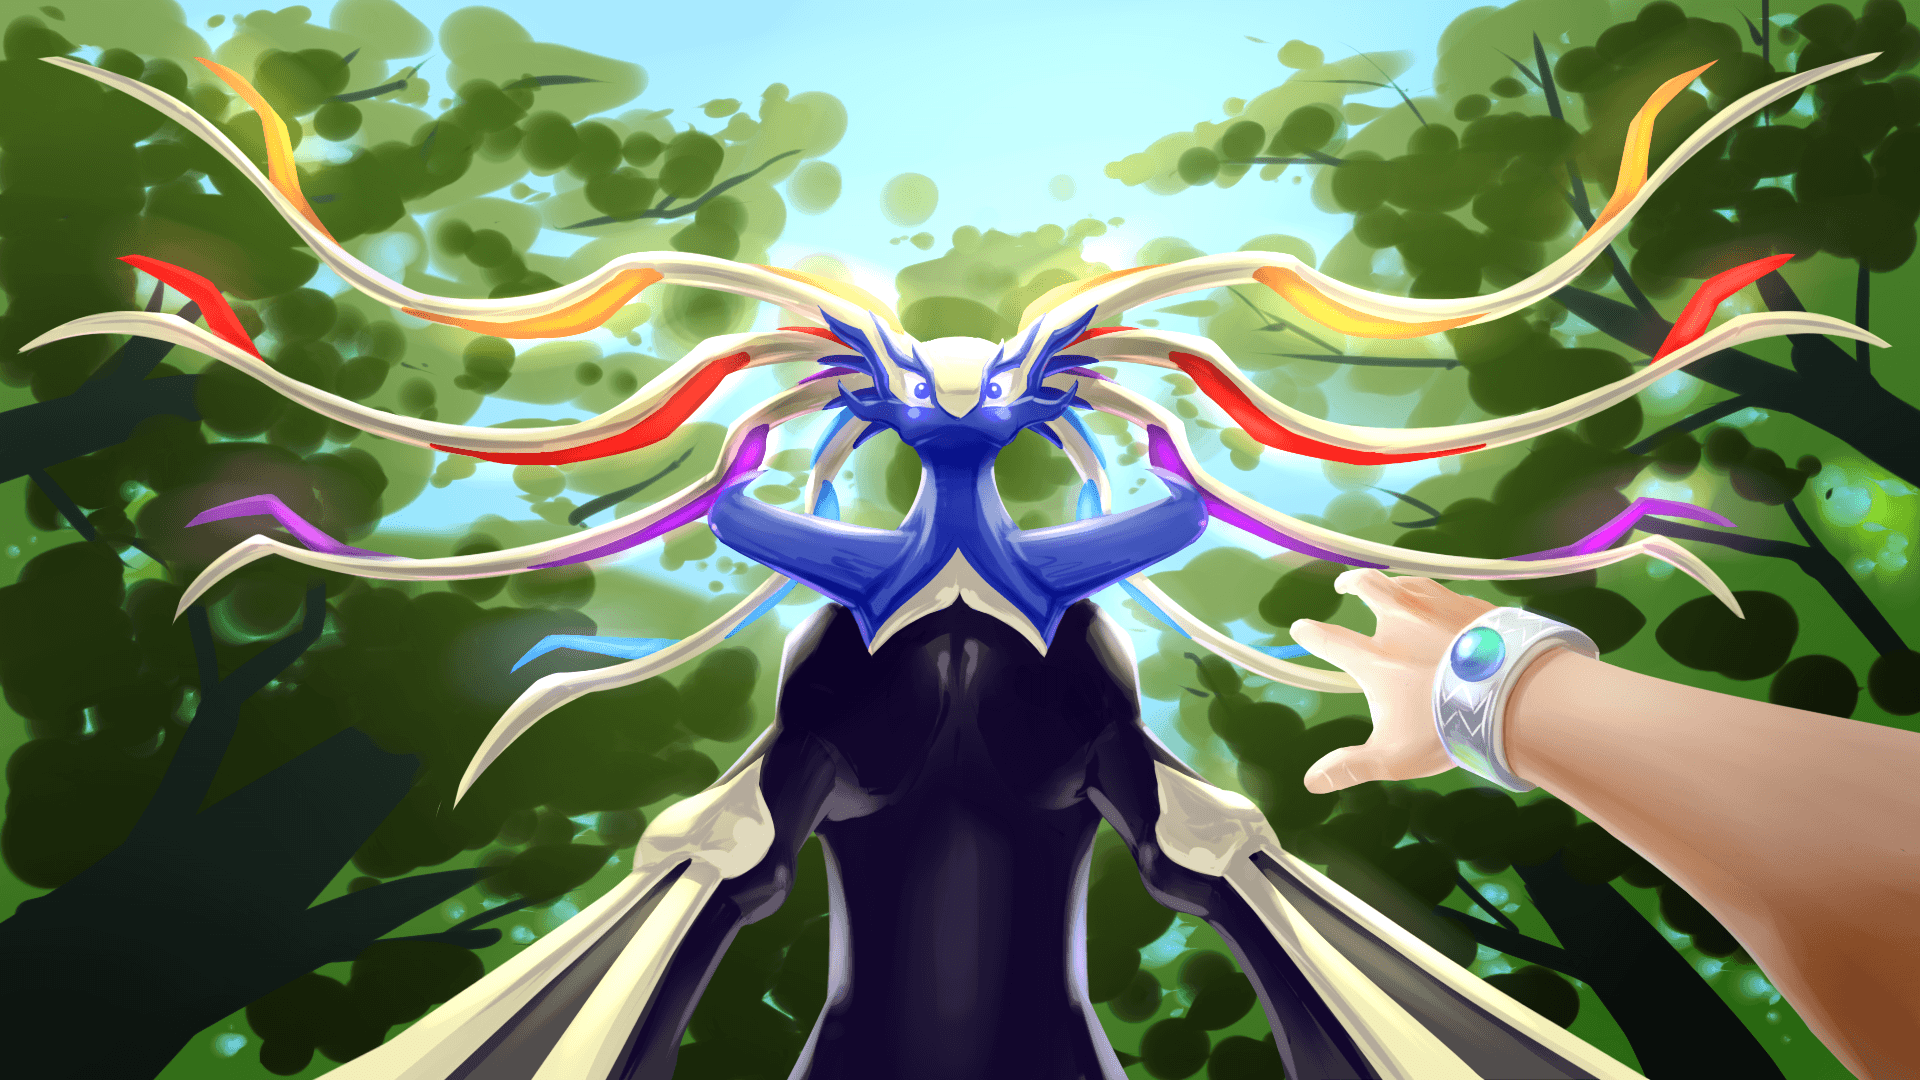 Xerneas Wallpapers Image Photos Pictures Backgrounds